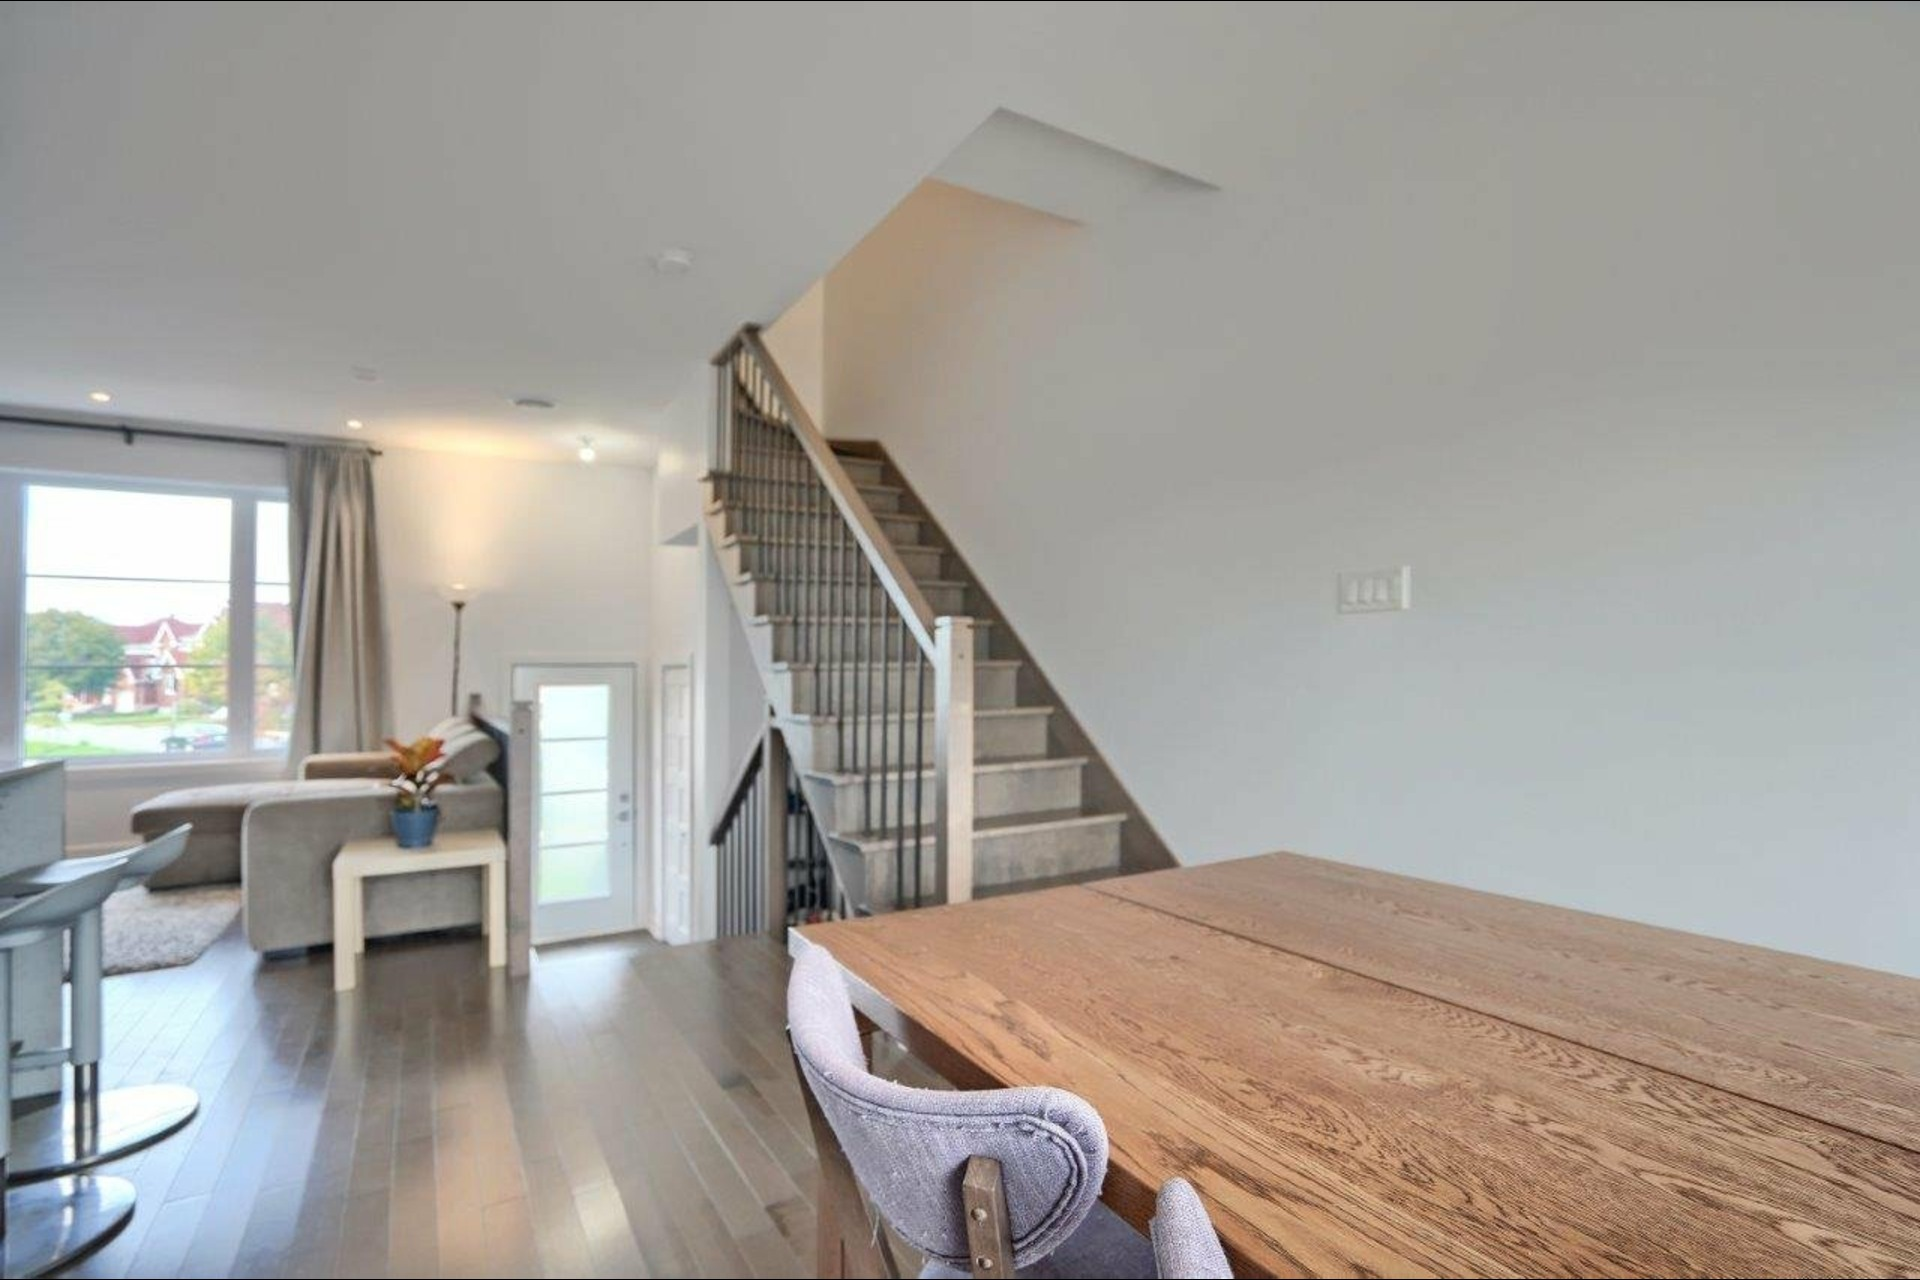 image 8 - House For sale Brossard - 10 rooms